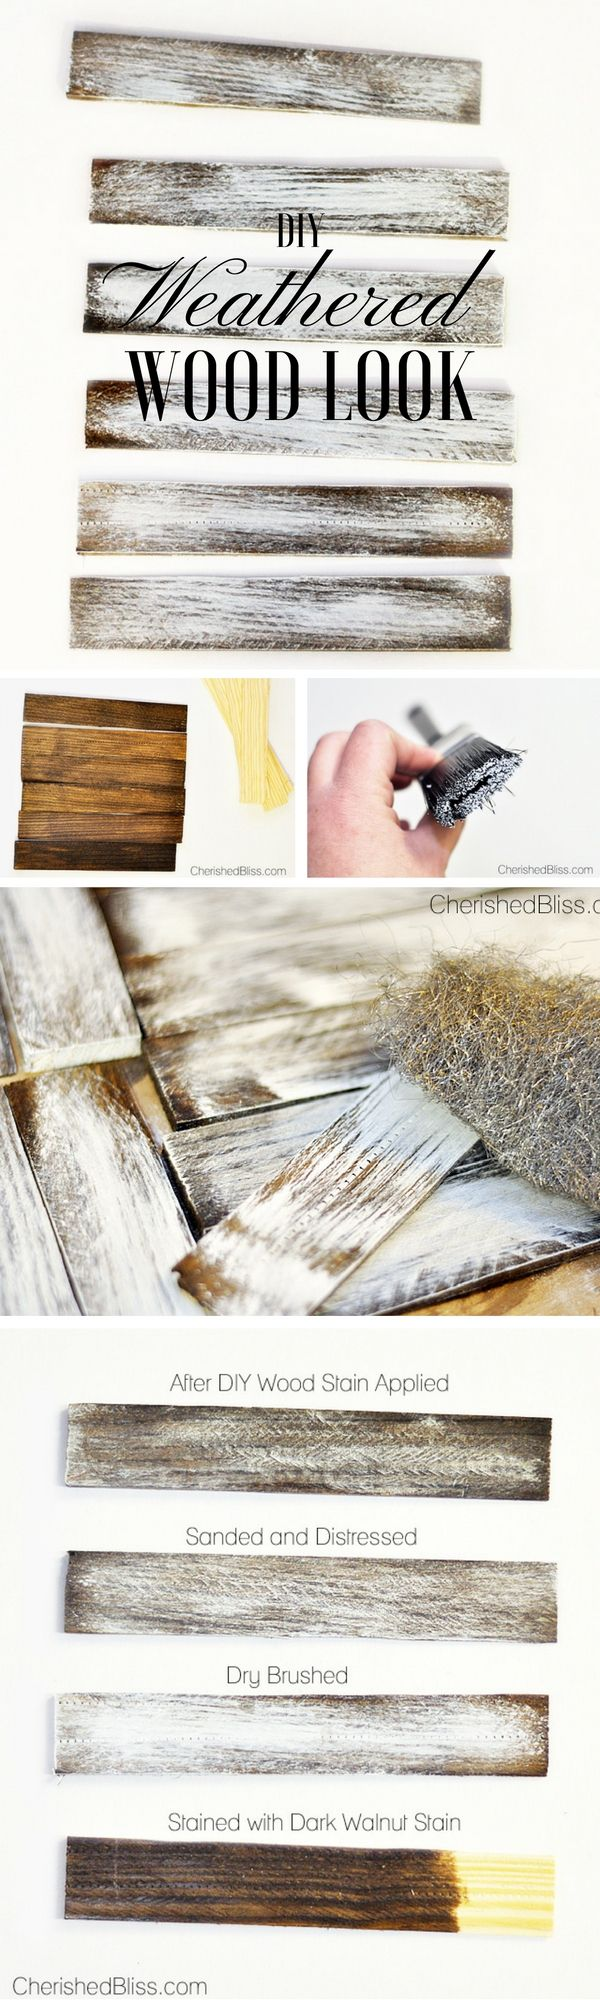 Check out the tutorial: #DIY Weathered Wood Look @istandarddesign